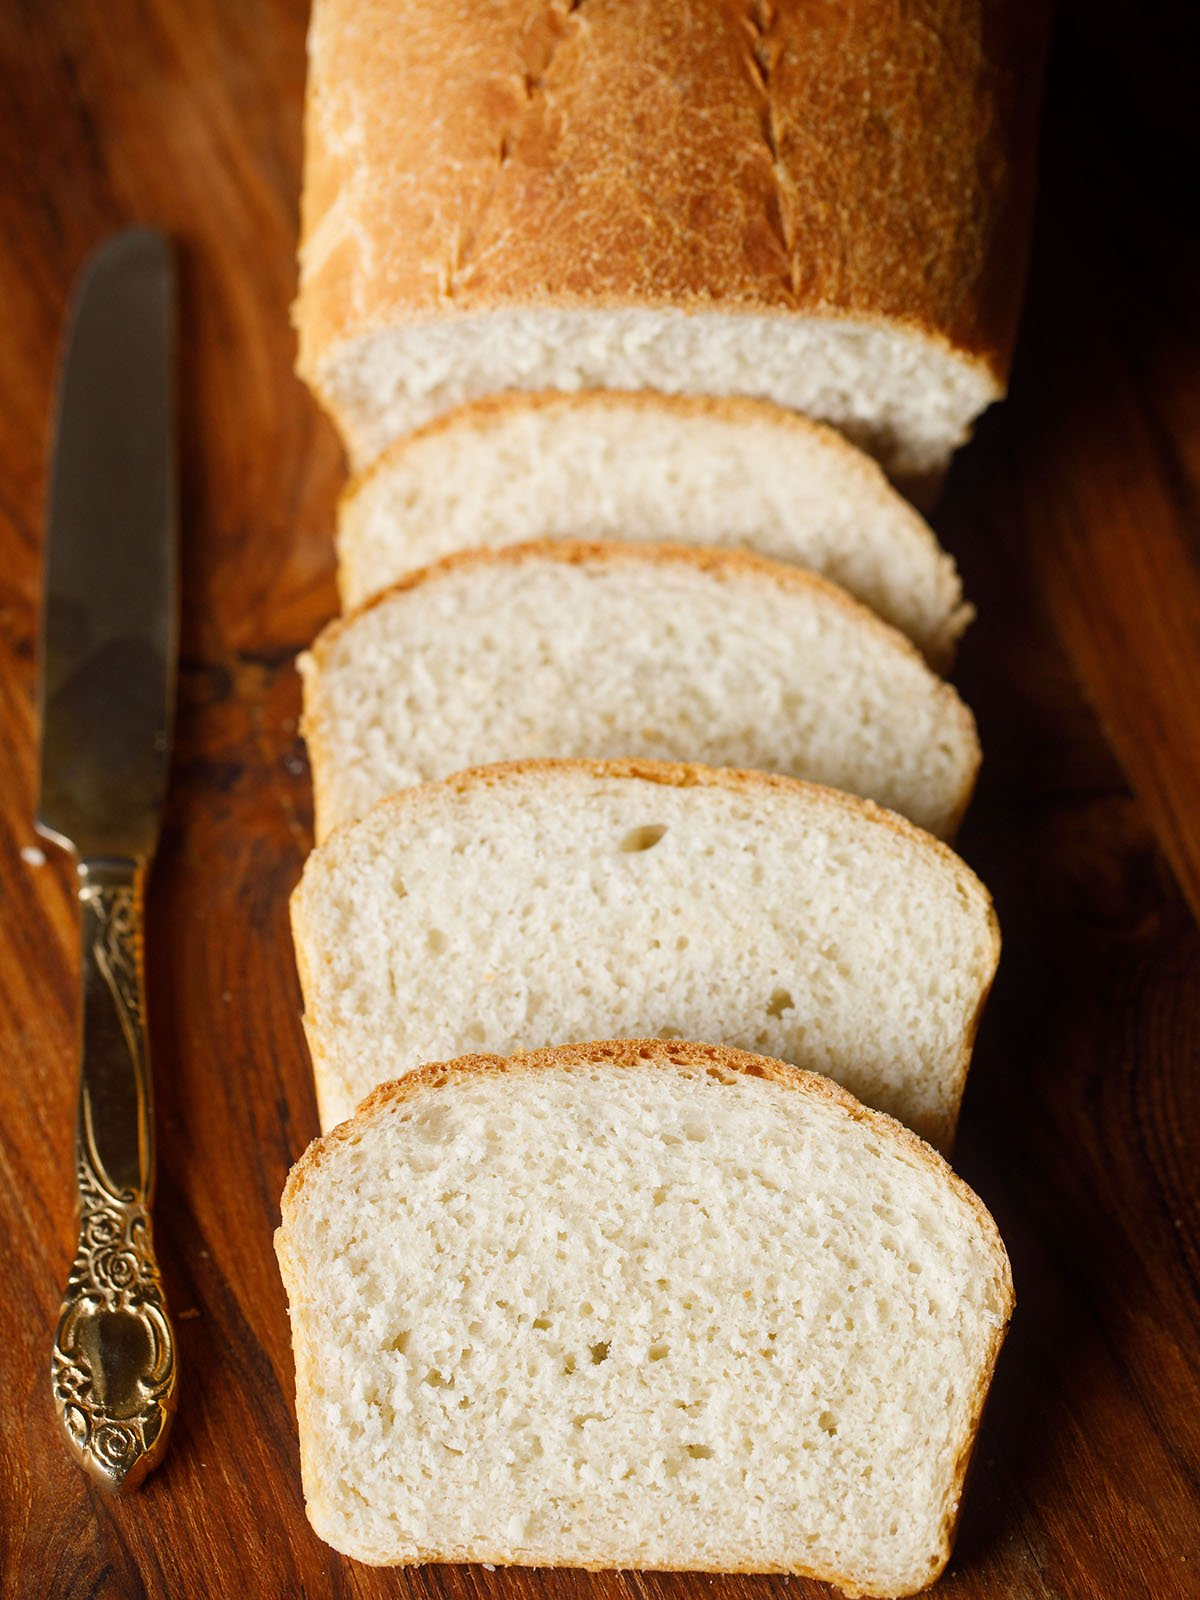 overheat shot of four slices of white bread with a partial view of the loaf with an brass butter knife on a brown wooden chopping board